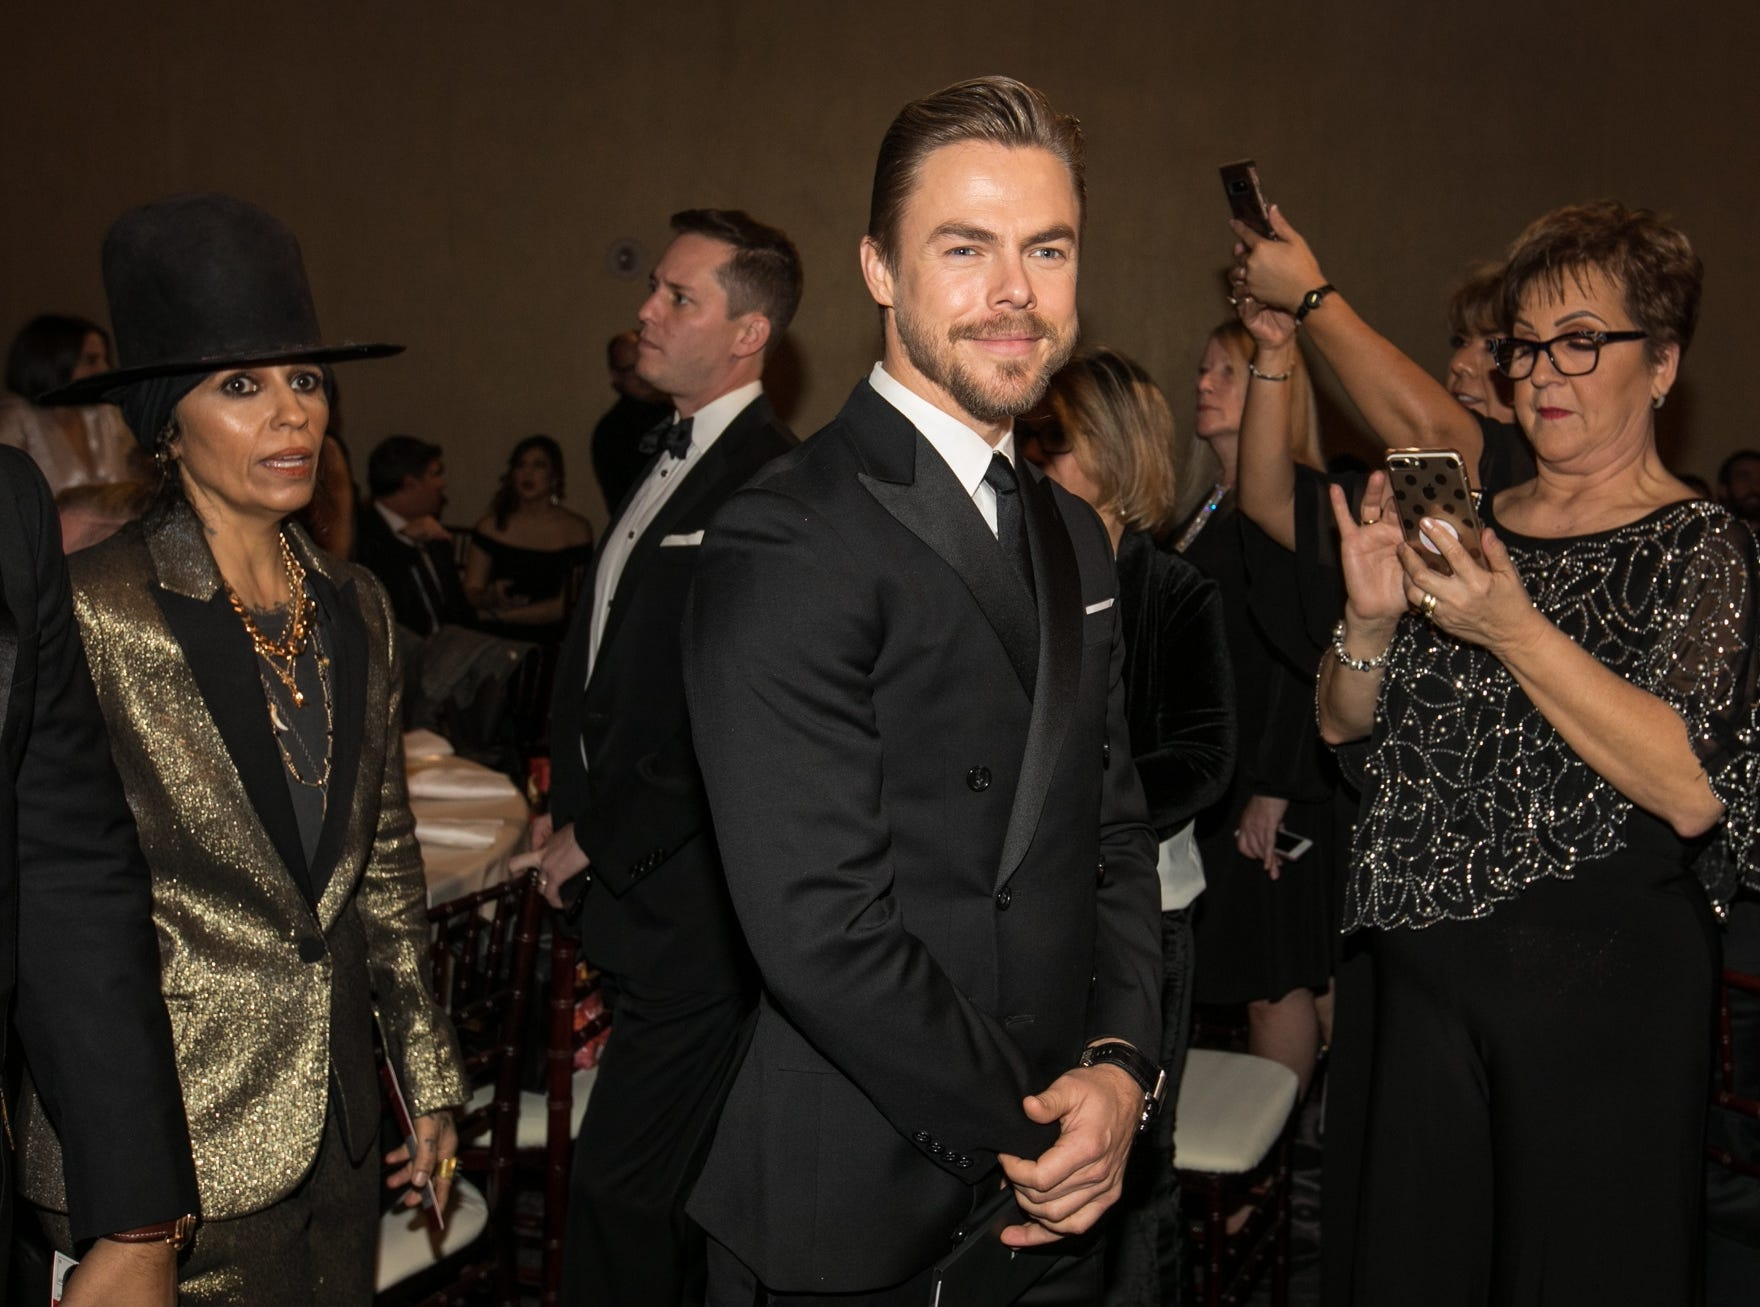 """World of Dance"" judge Derek Hough looks sharp in a tux."